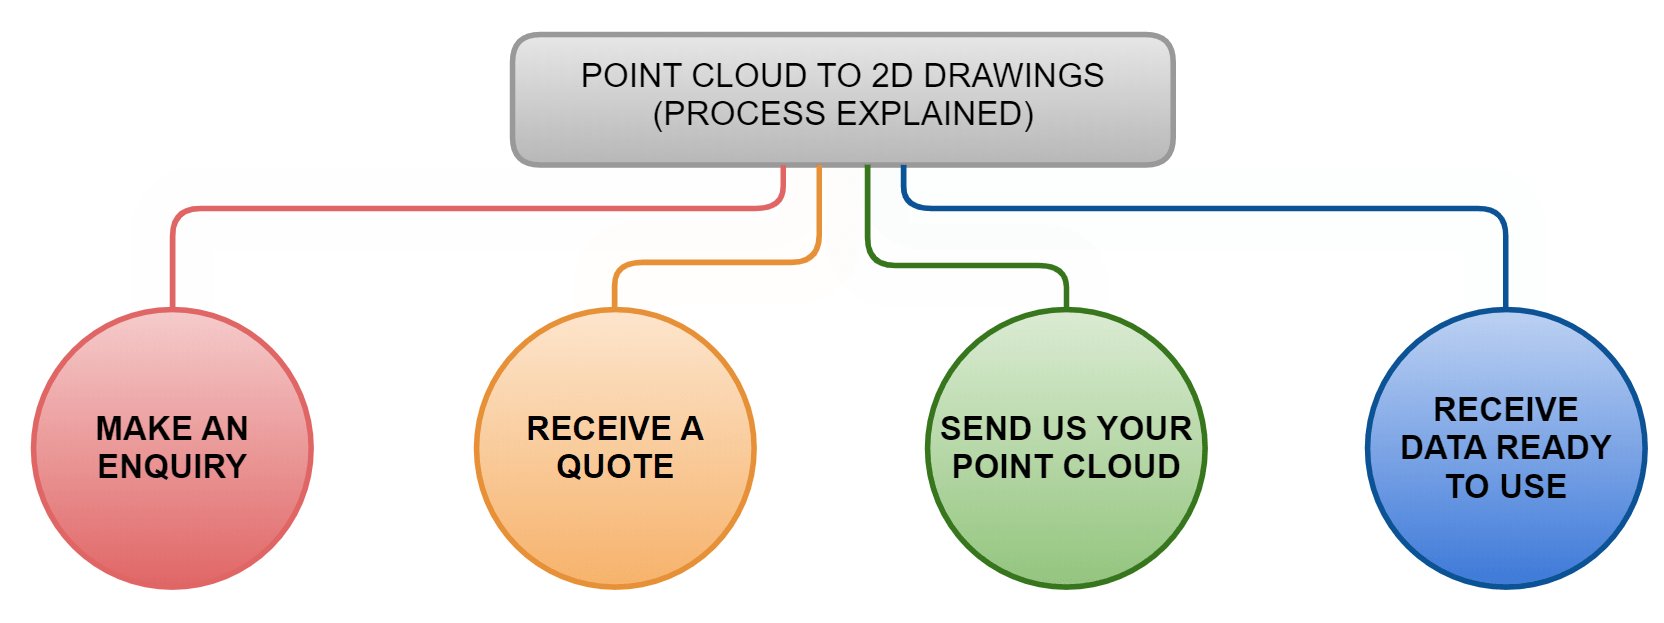 Point Cloud to 2D CAD Process diagram